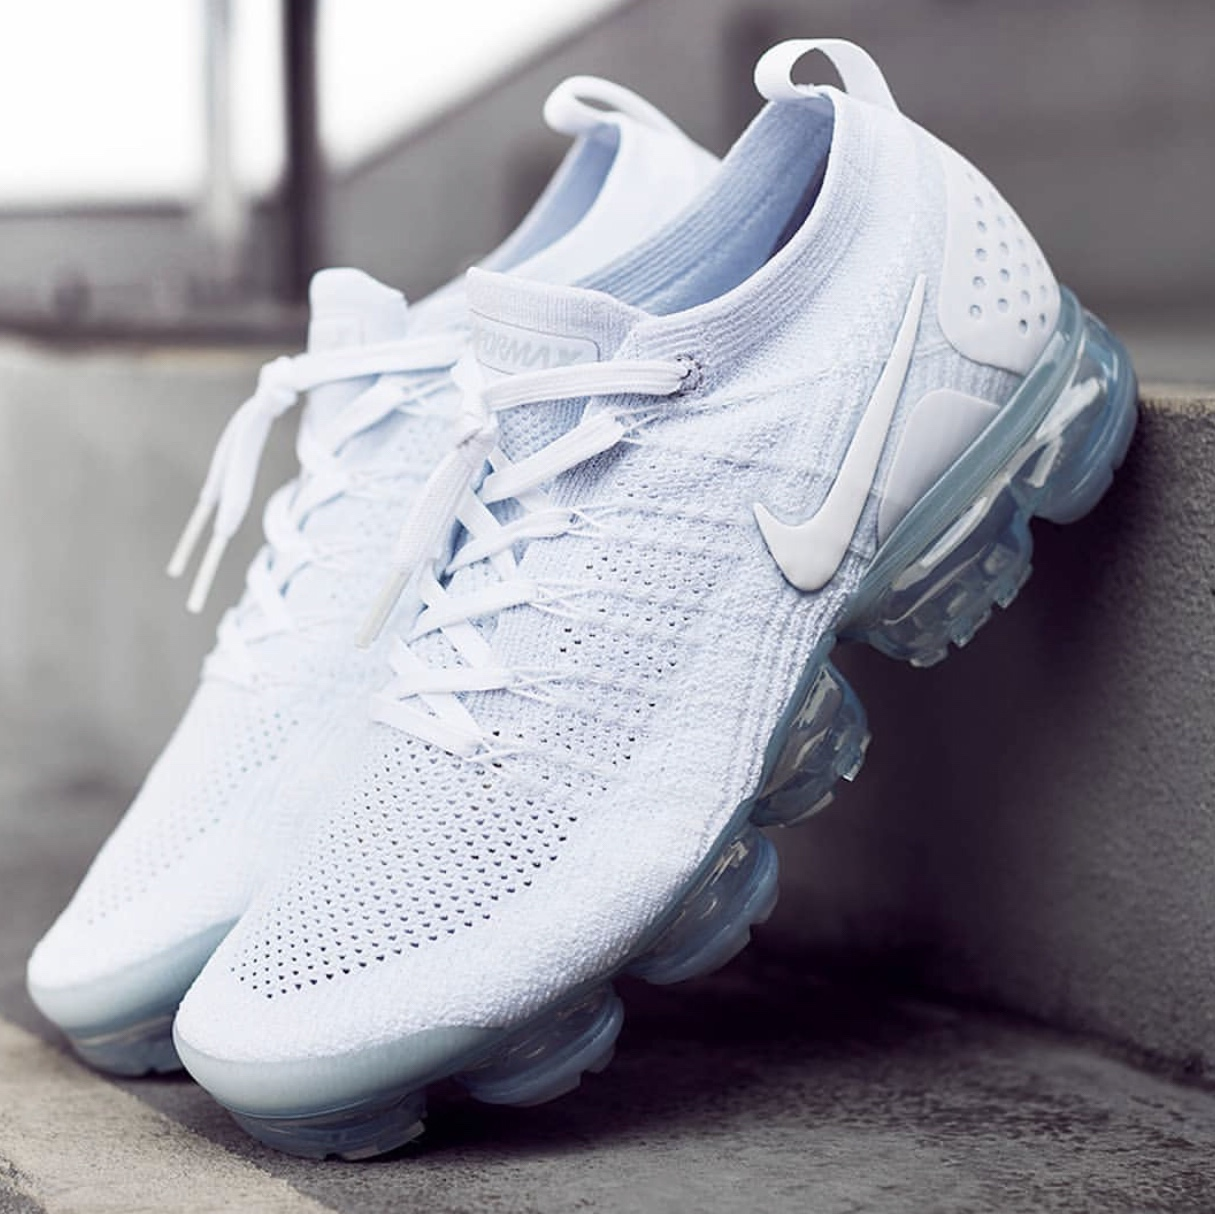 buy online c919e 67441 The @Nike Air VaporMax Flyknit Triple White ☁️ Worn ...